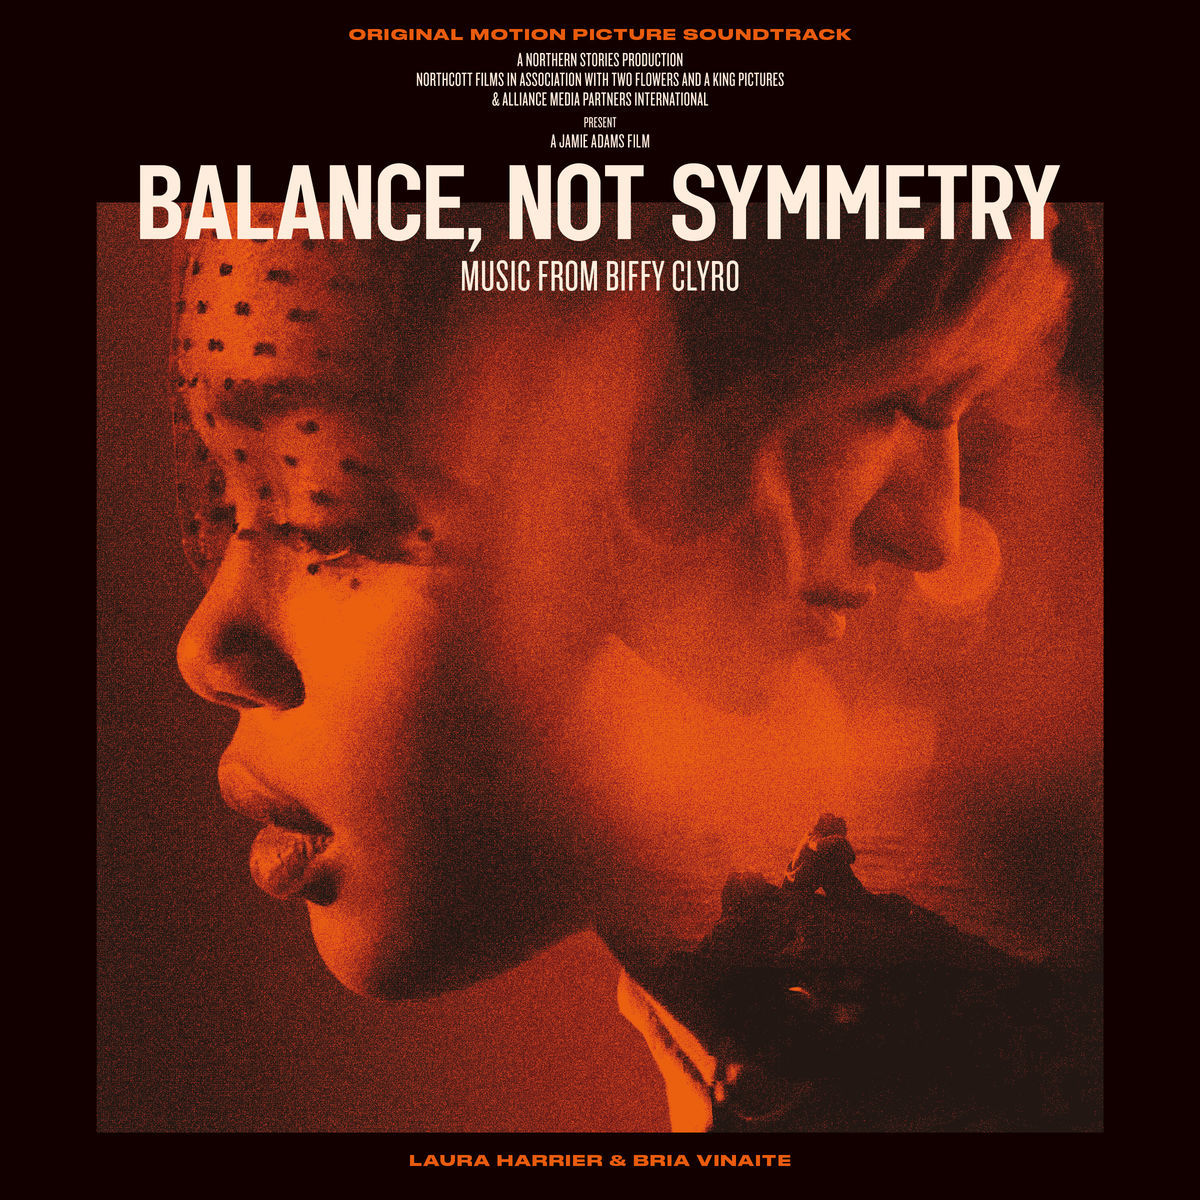 Biffy Clyro | Balance, Not Symmetry: Original Motion Picture Soundtrack